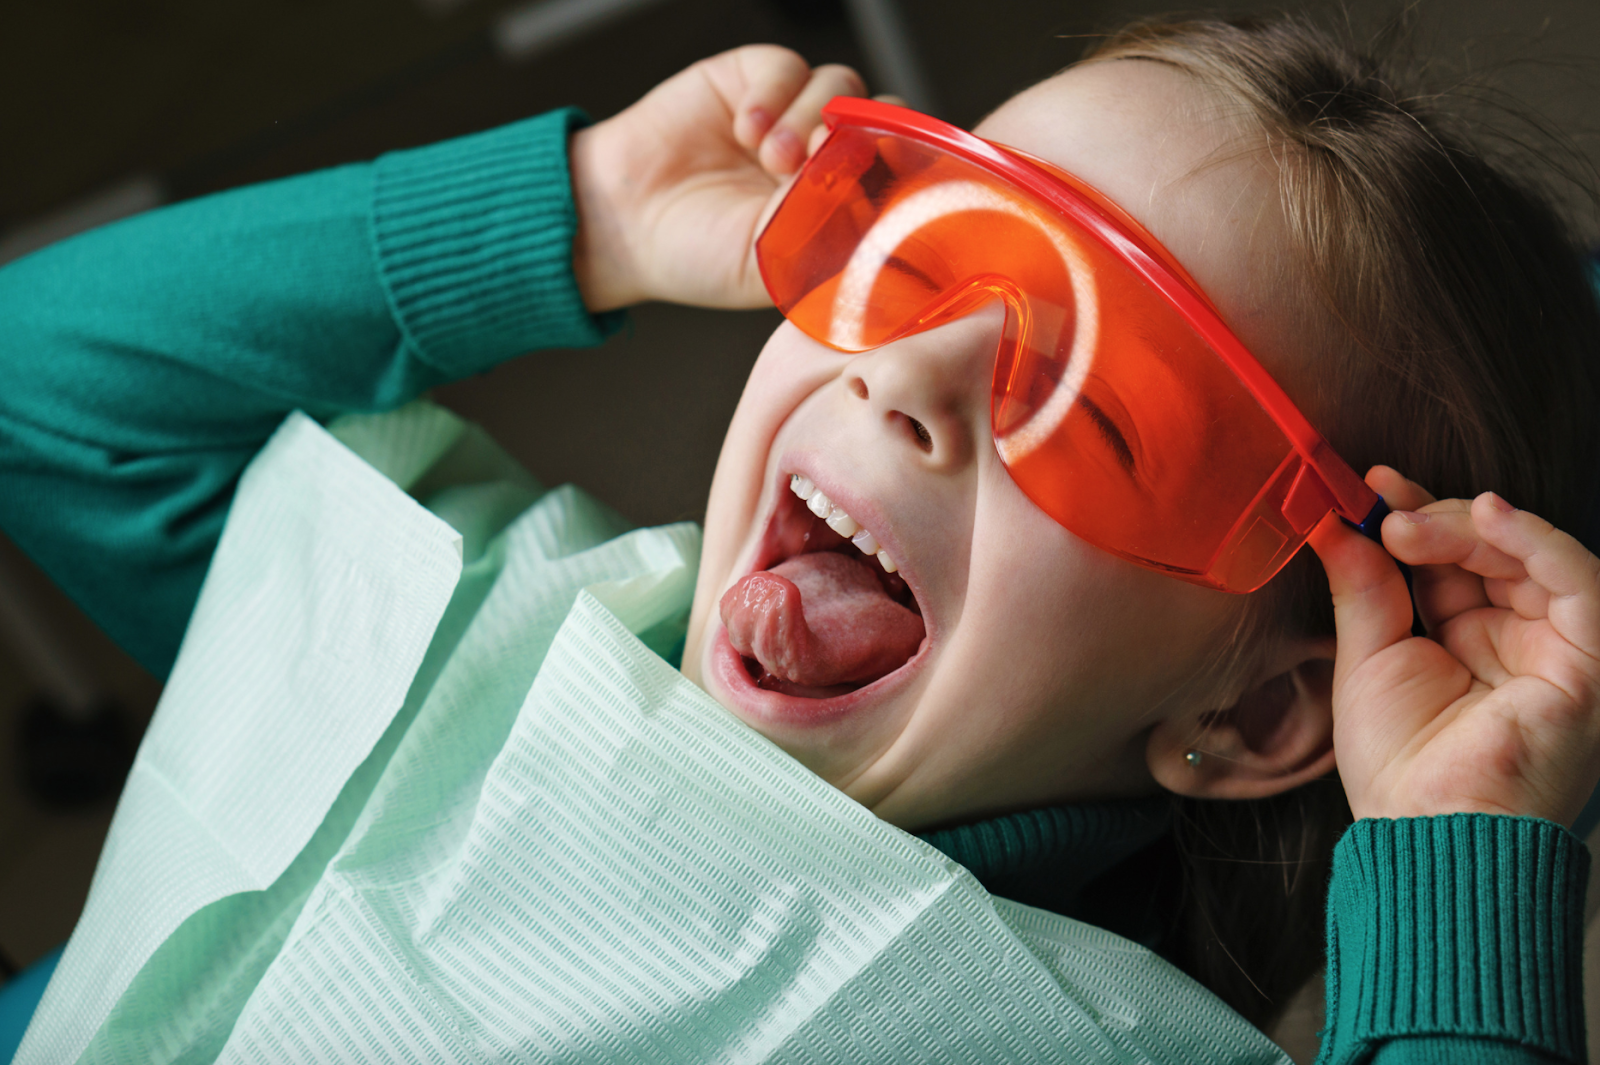 Smiling child wearing safety glasses